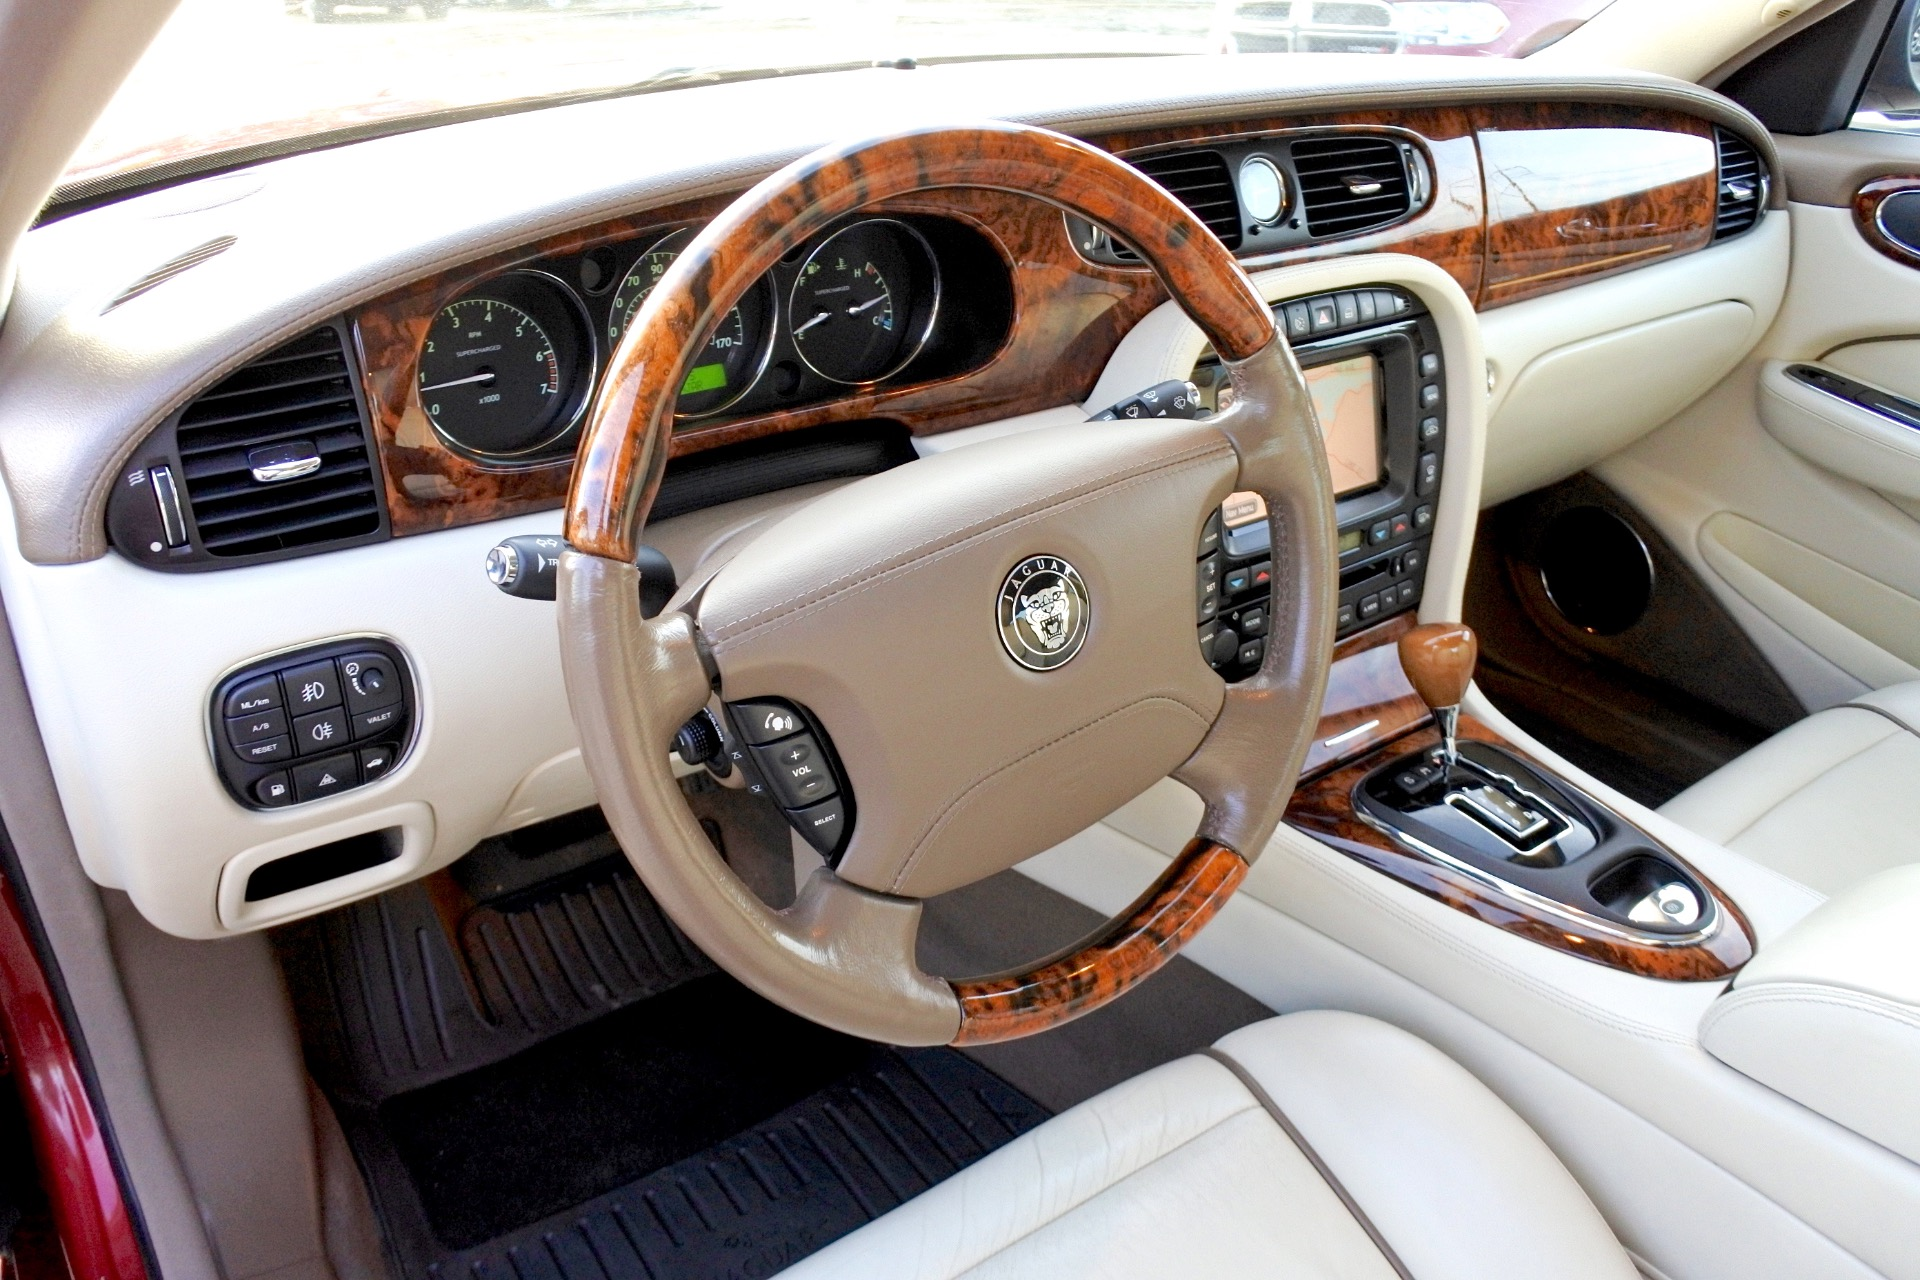 Used 2007 Jaguar Xj l Super V8 Used 2007 Jaguar Xj l Super V8 for sale  at Metro West Motorcars LLC in Shrewsbury MA 13